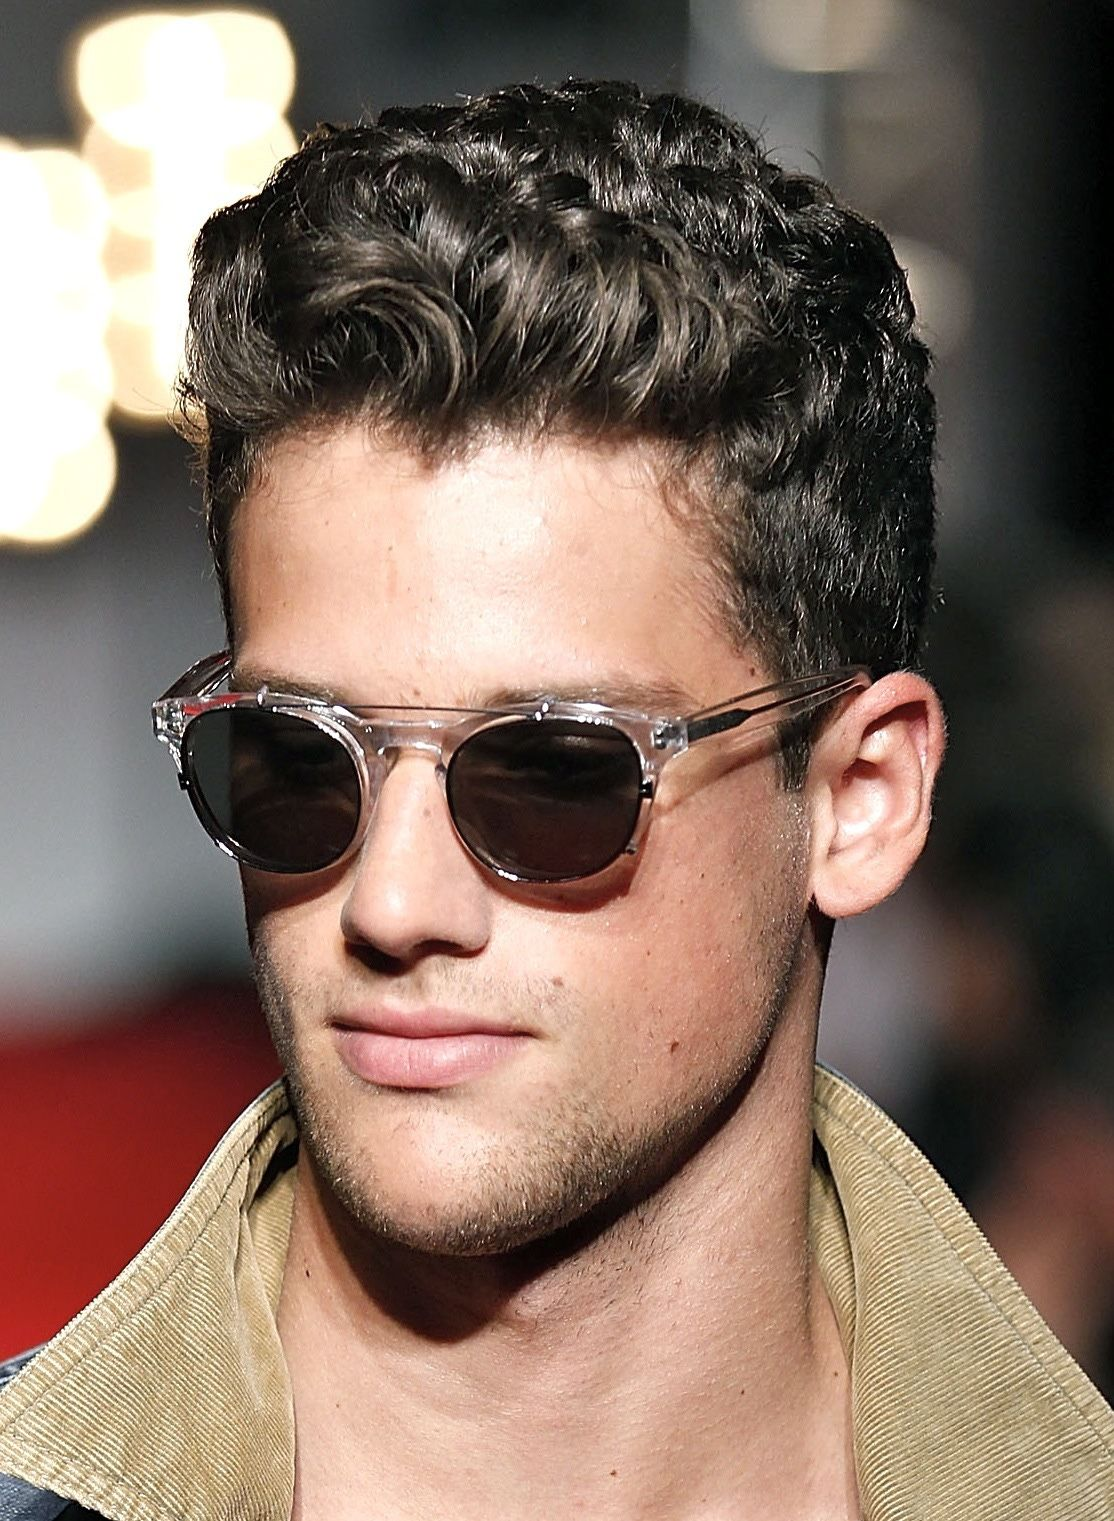 Sensational 1000 Images About Curly Hairstyles On Pinterest Men Curly Short Hairstyles Gunalazisus